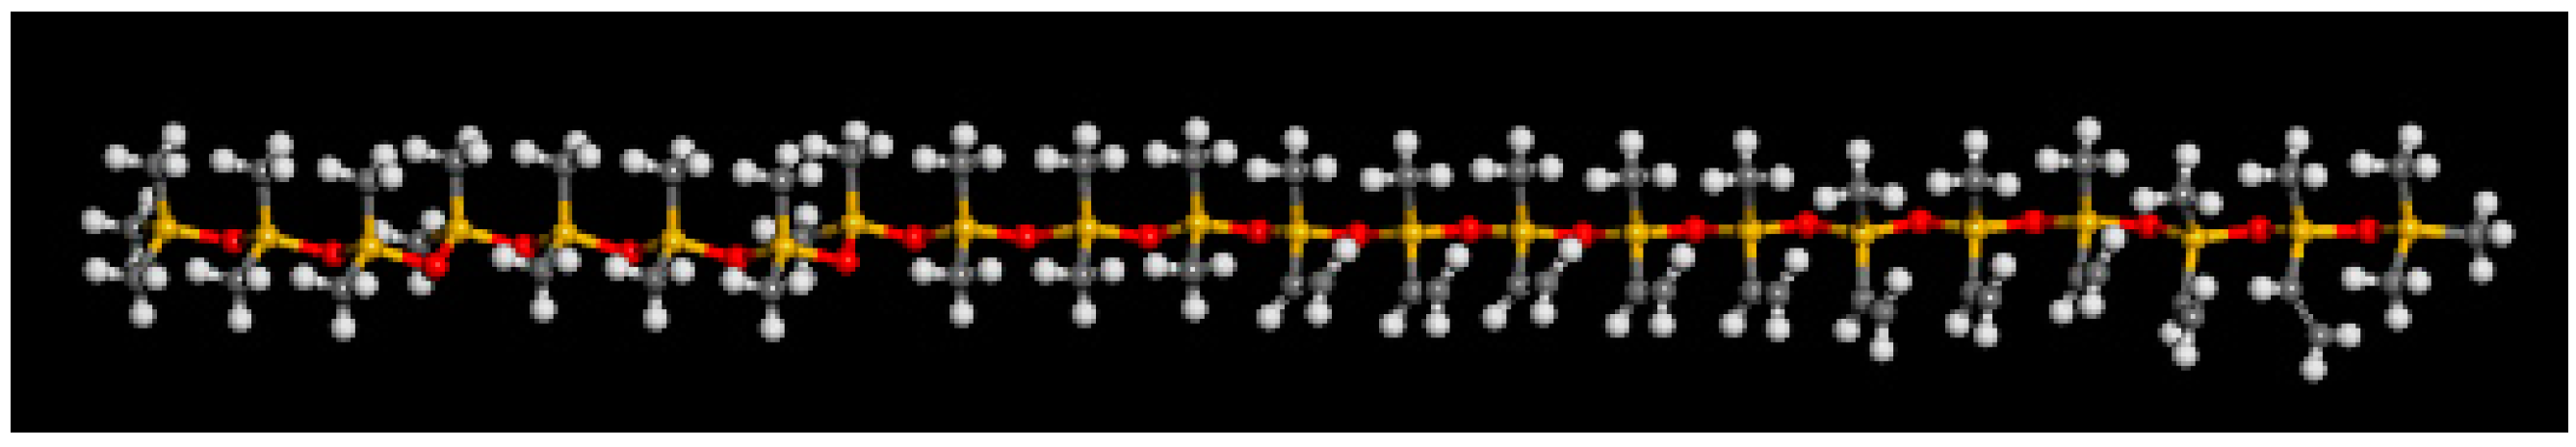 Molecules Free Full Text Electric Field Intensity